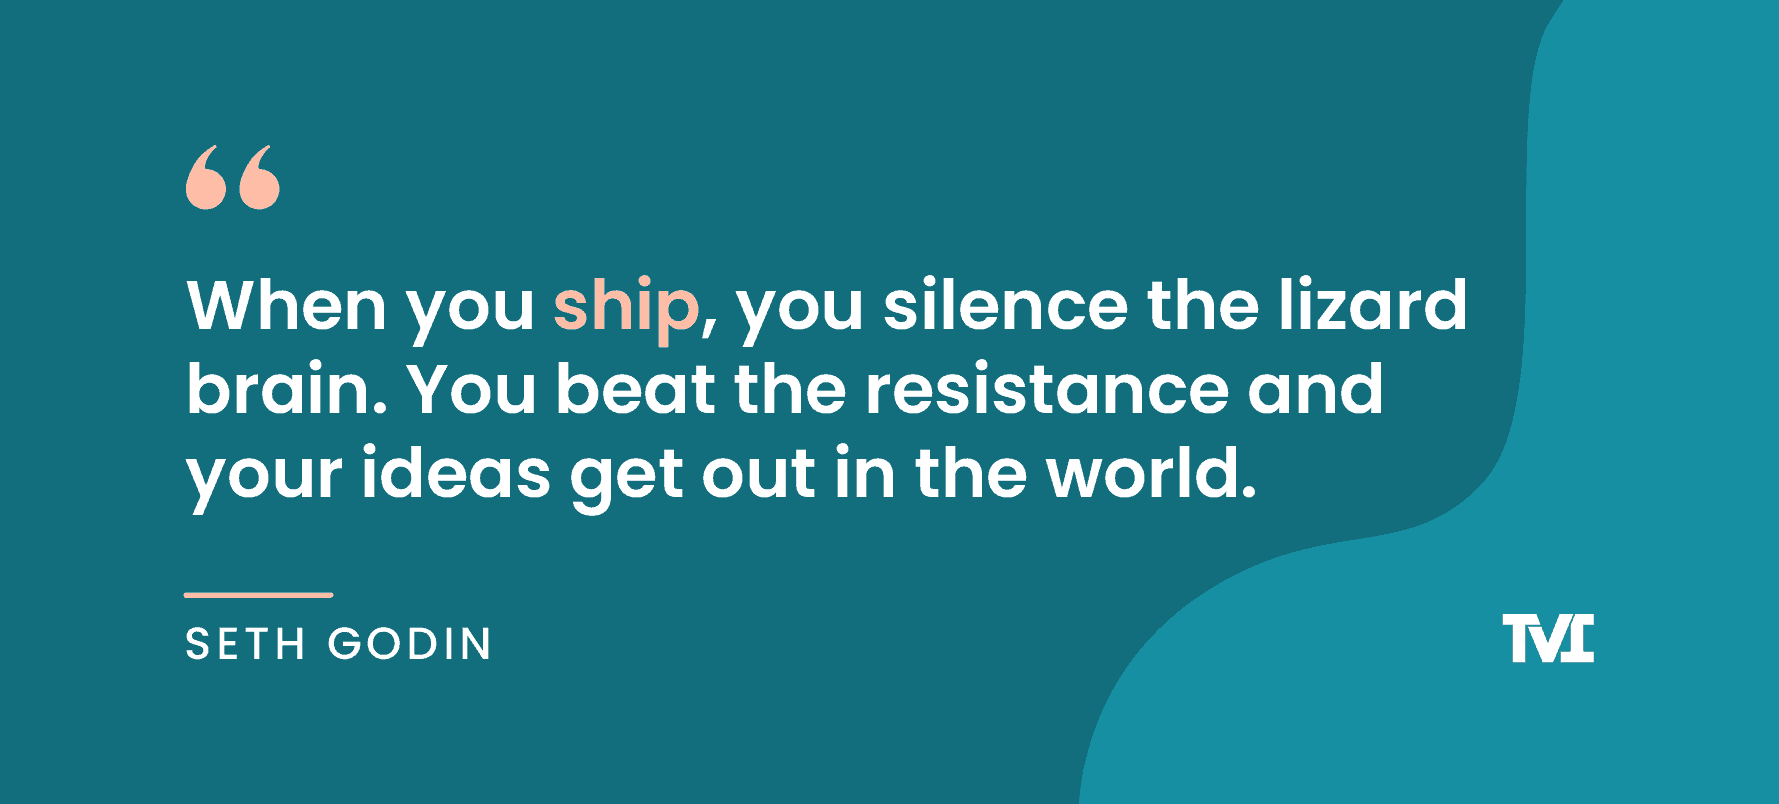 """productivity quotes: """"When you ship, you silence the lizard brain. You beat the resistance and your ideas get out in the world."""" —Seth Godin"""